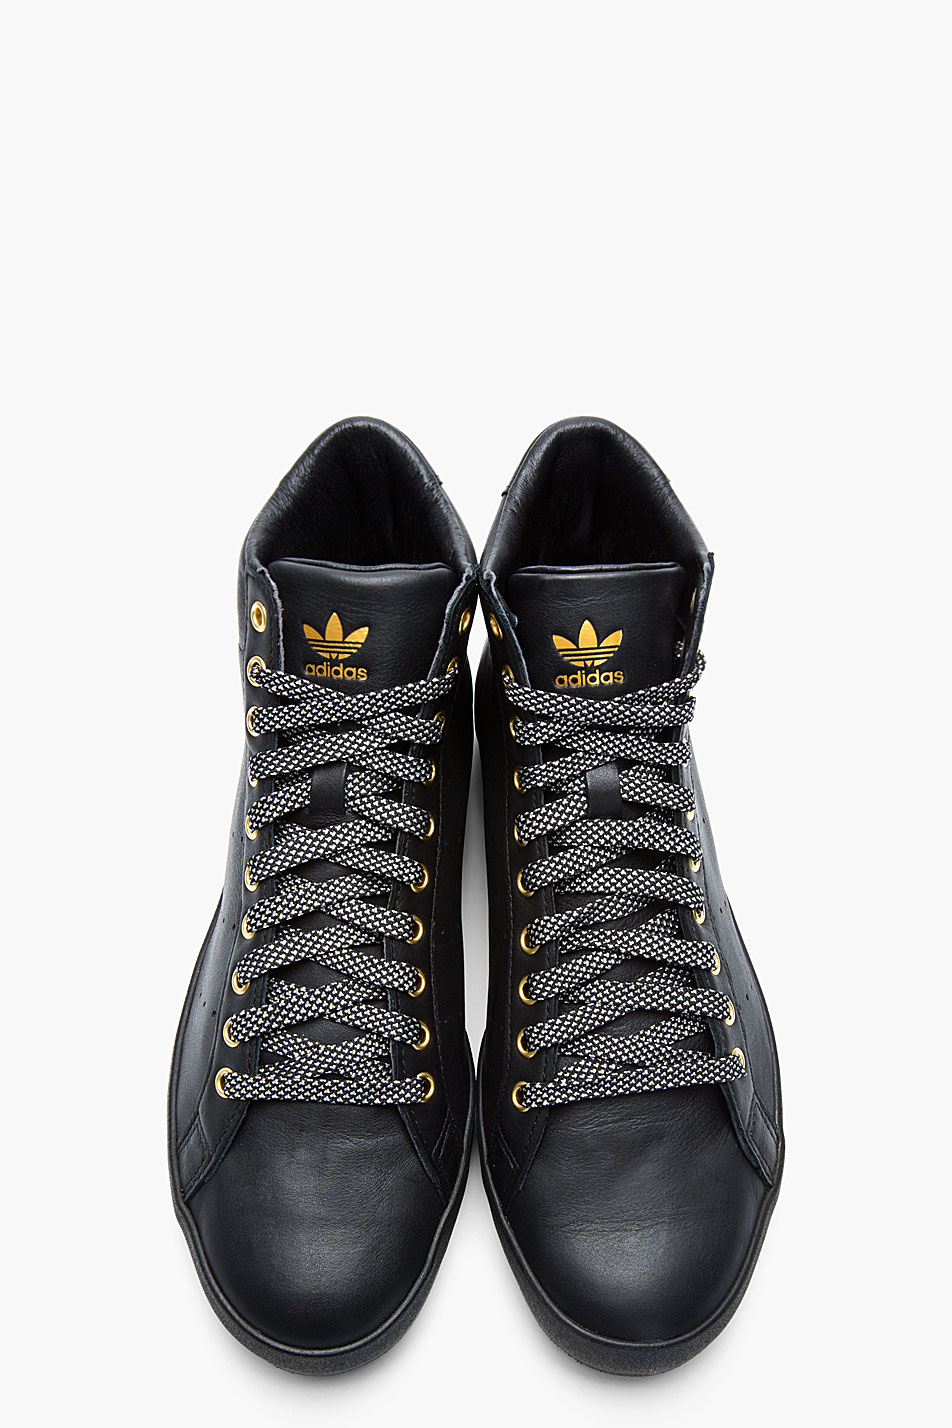 Adidas Originals Top Ten Hi Rare Sneakers New Brown: Opening Ceremony Black And Gold Leather Rod Laver